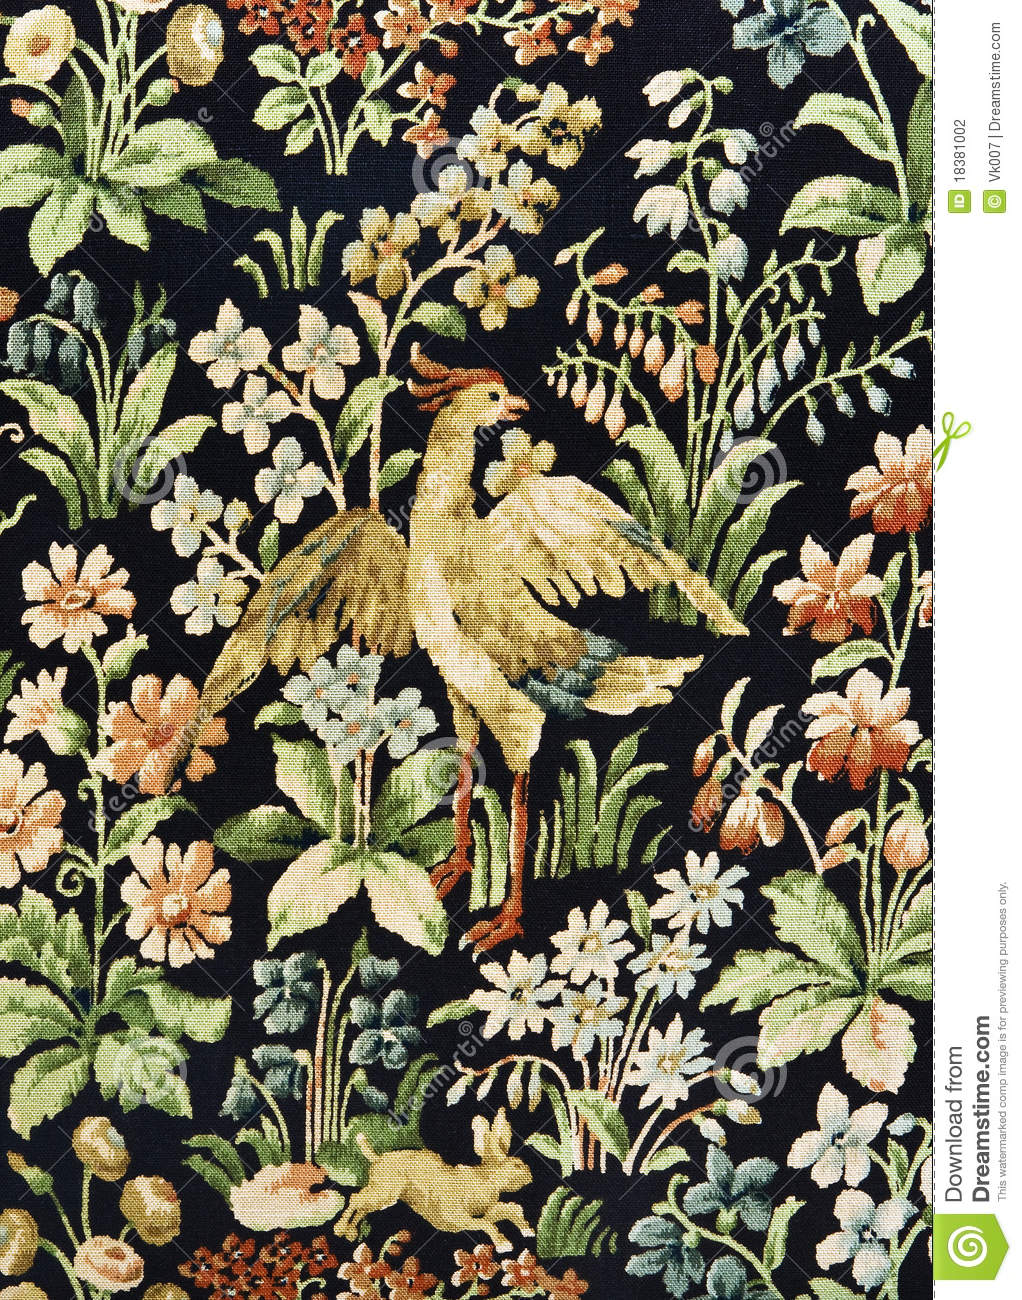 Pattern Of An Ornate Floral Tapestry Stock Photo Image